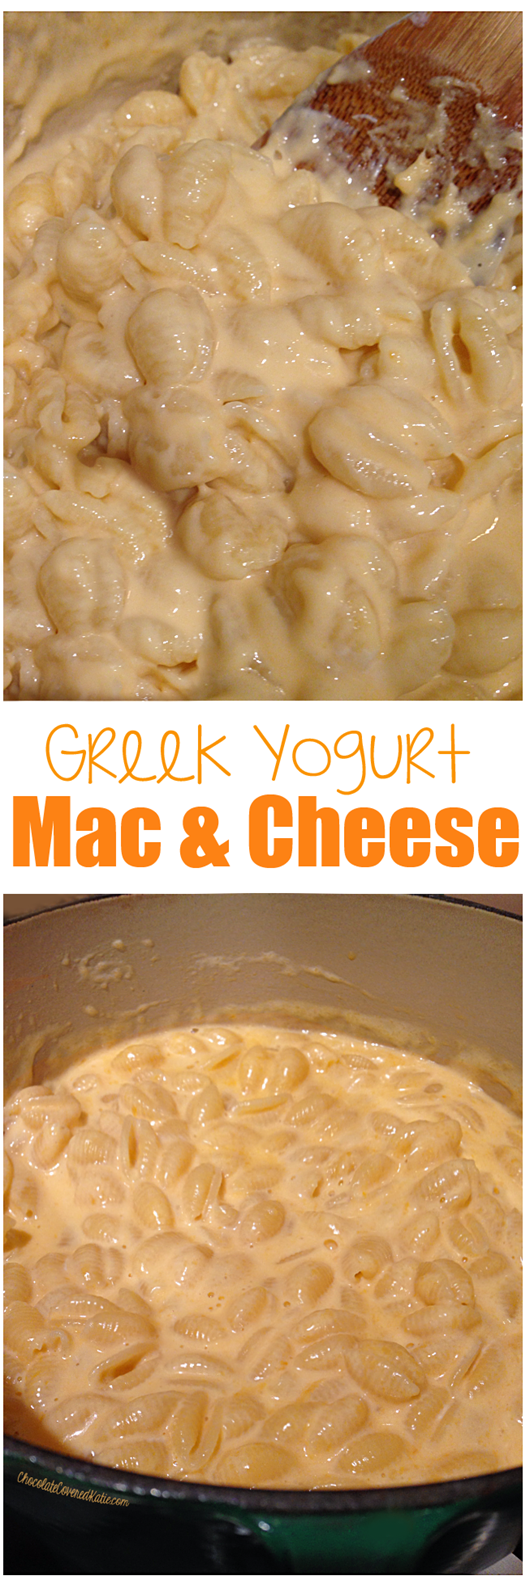 Greek Yogurt Mac And Cheese | Homemade Mac And Cheese | Upgrade From Velveeta And Make A Delicious Holiday Meal